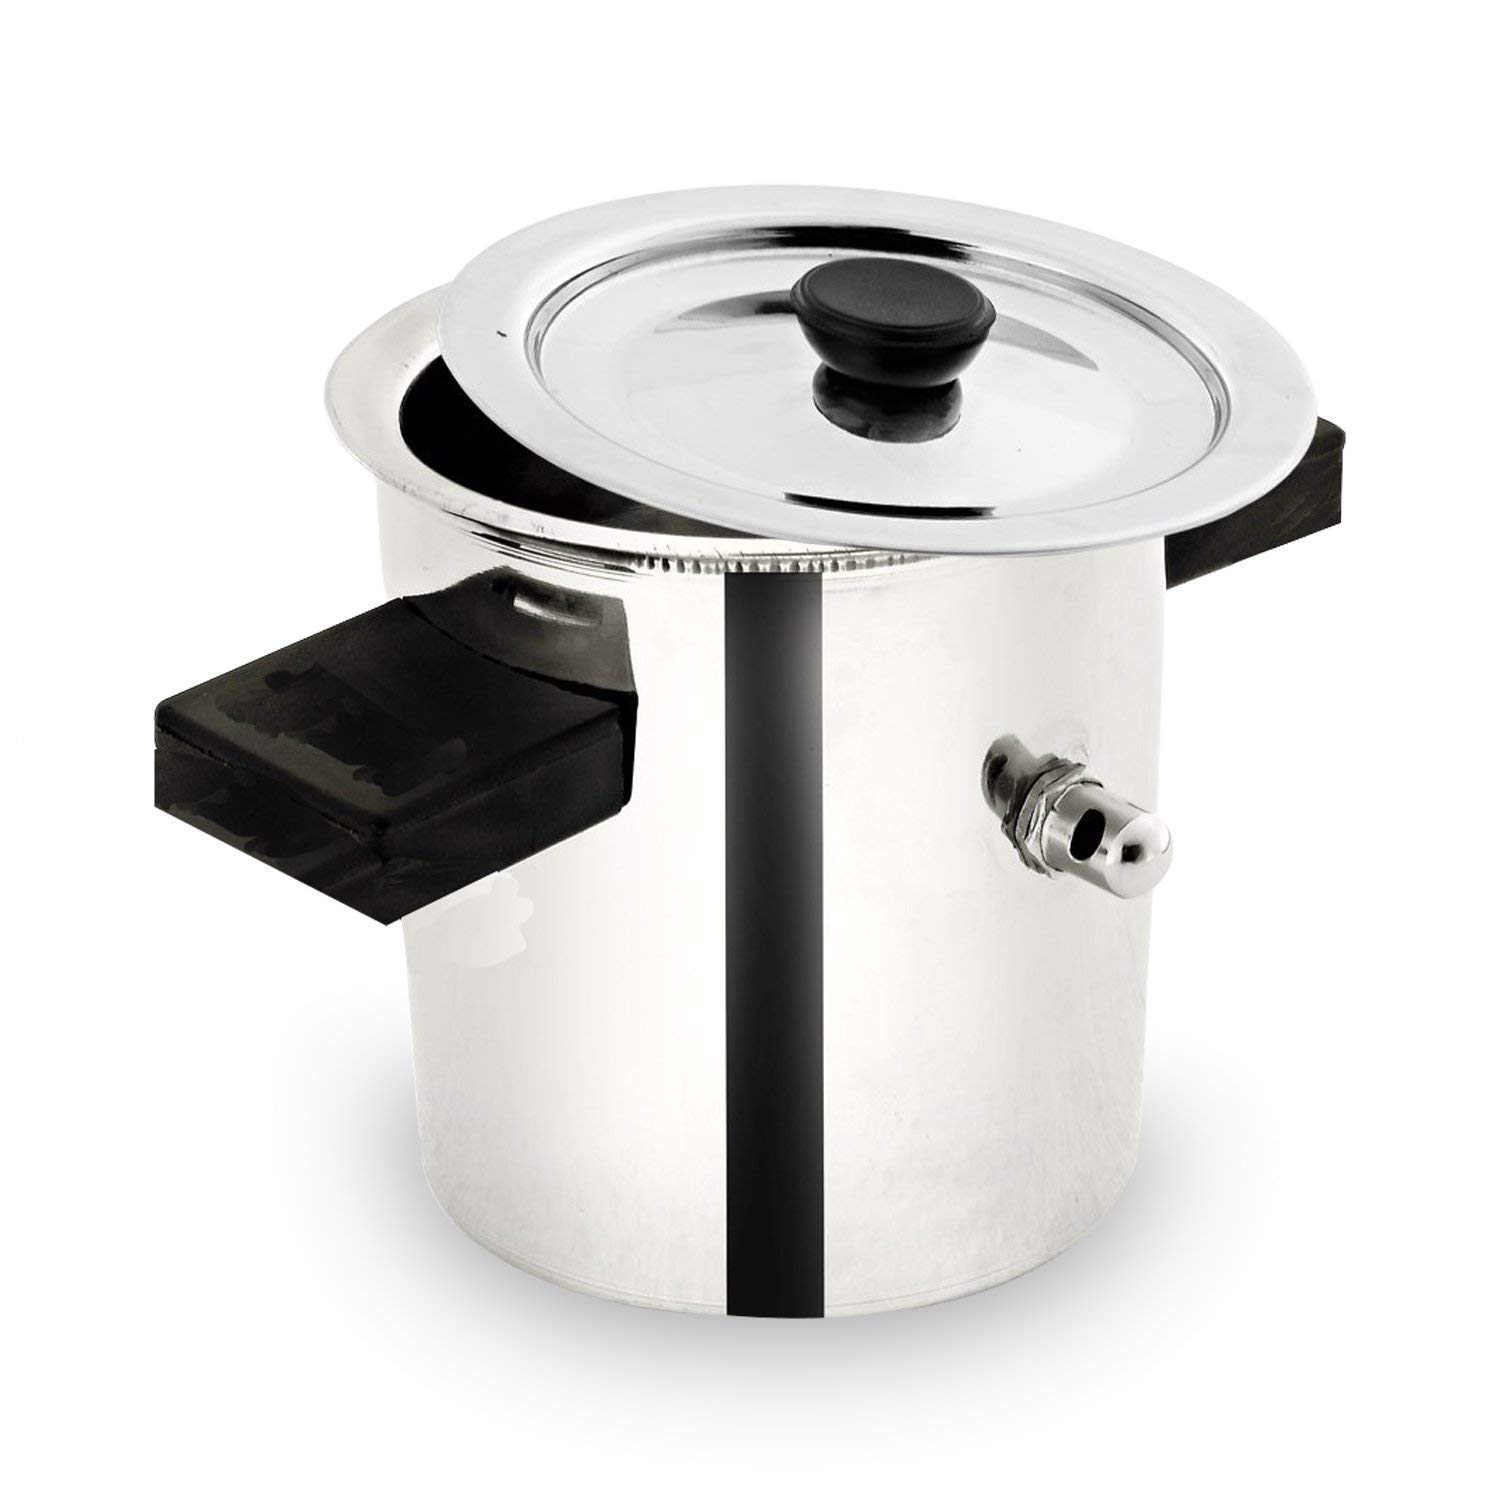 PRC Stainless Steel Milk Boiler-2Ltrs by PRC Online Retail